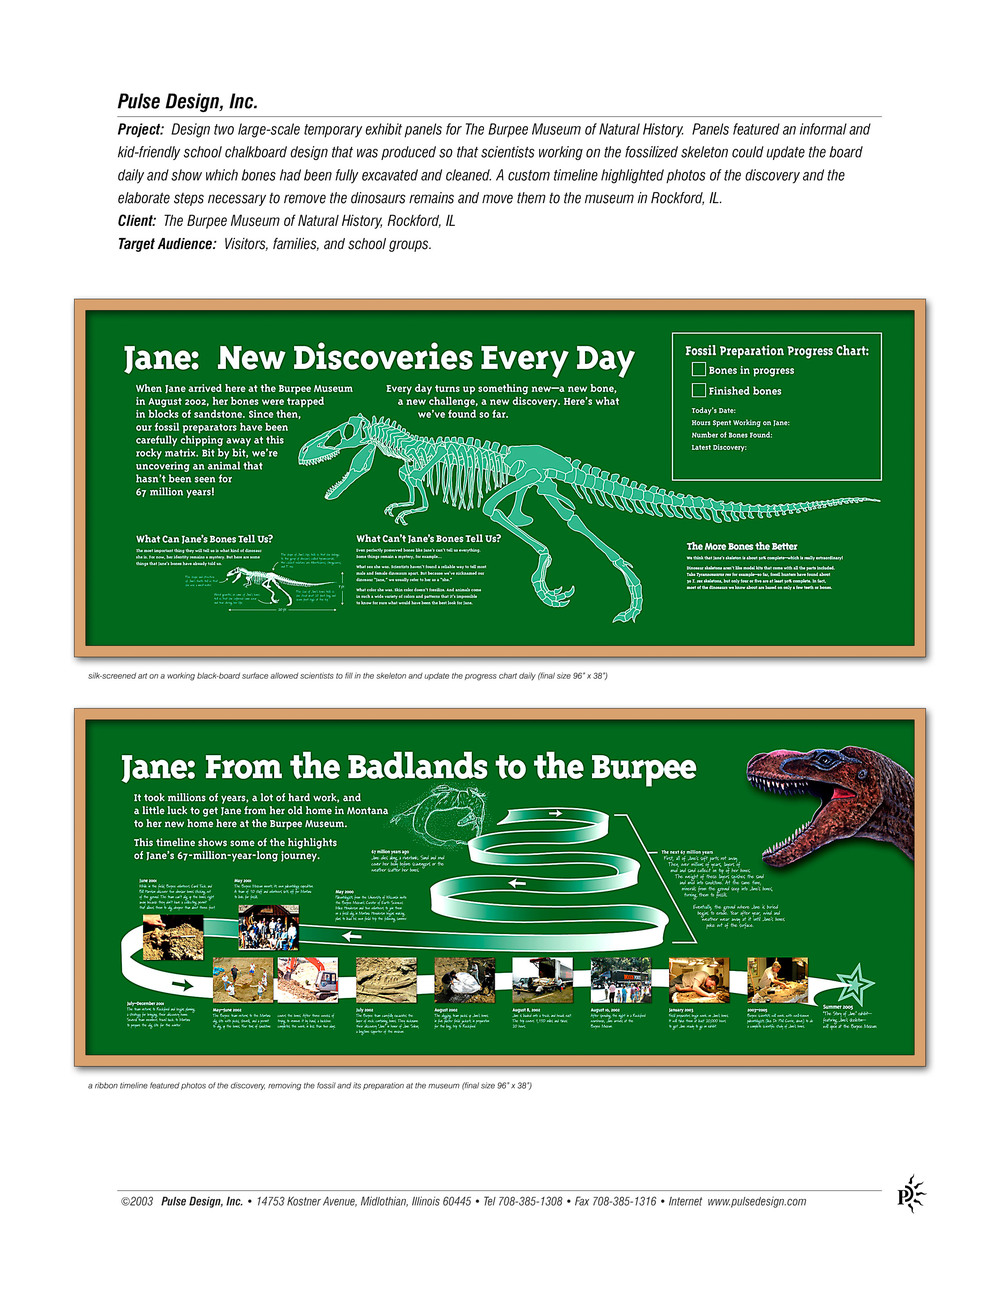 Burpee-Museum-Jane-Dinosaur-Exhibit-Pulse-Design-Inc.jpg